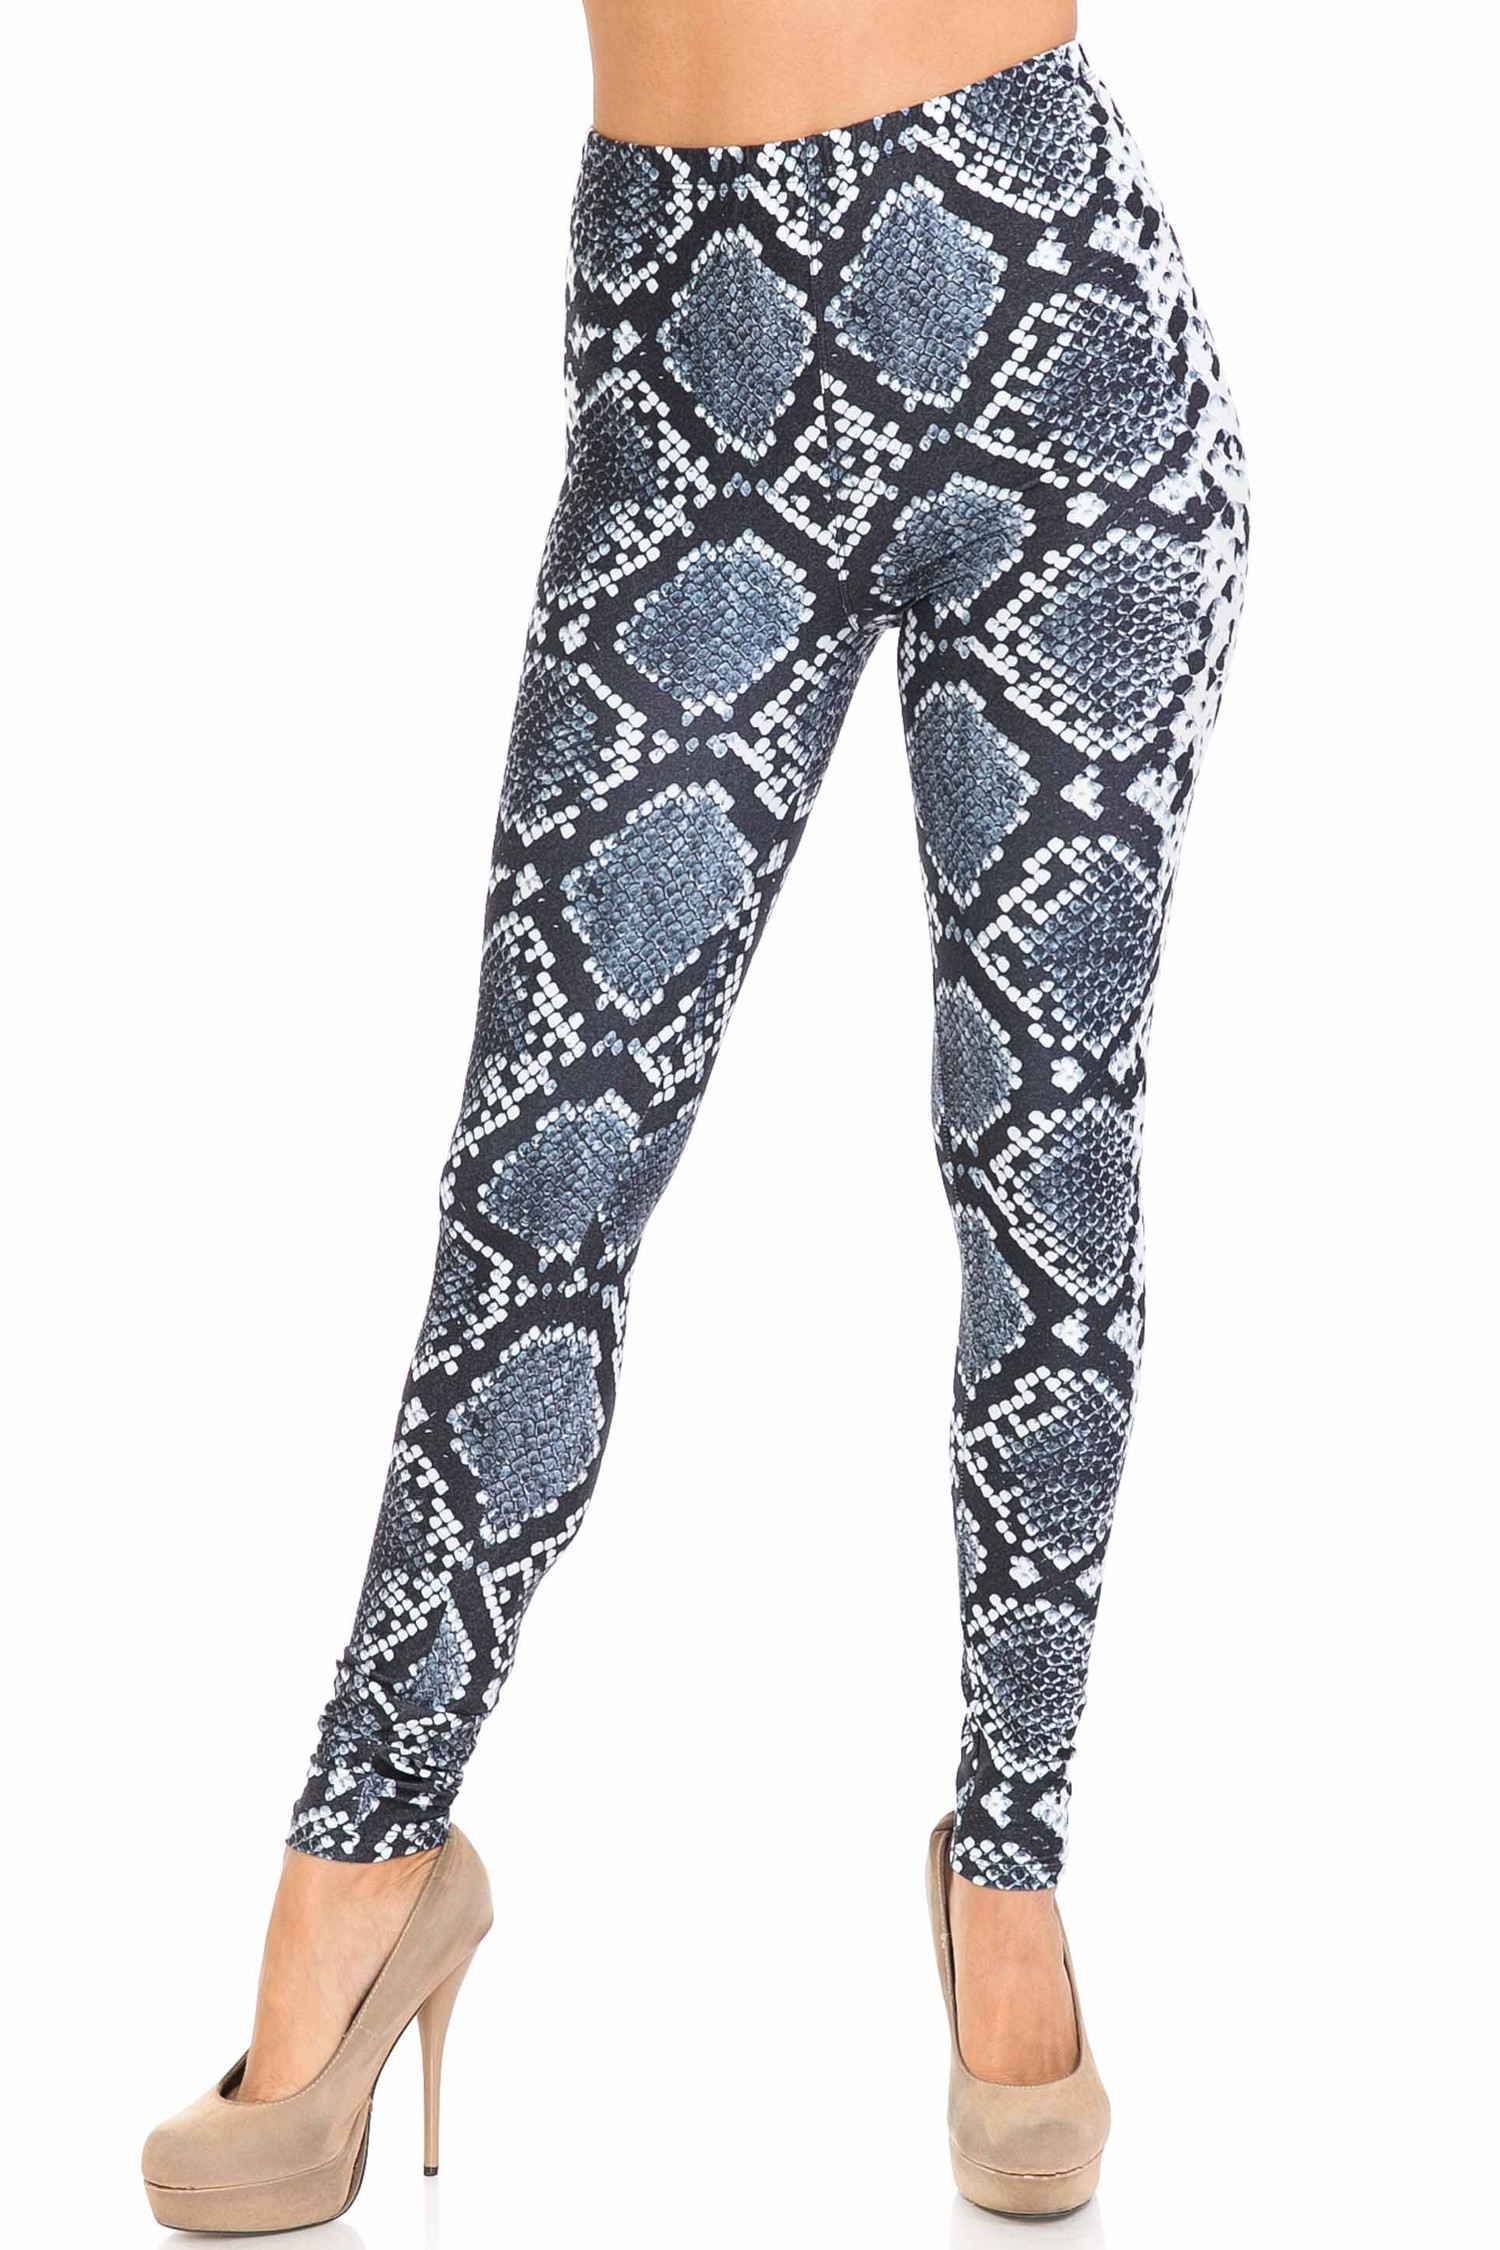 Front of Creamy Soft Steel Blue Boa Plus Size Leggings - USA Fashion™ with a fitted skinny leg and full length hem.